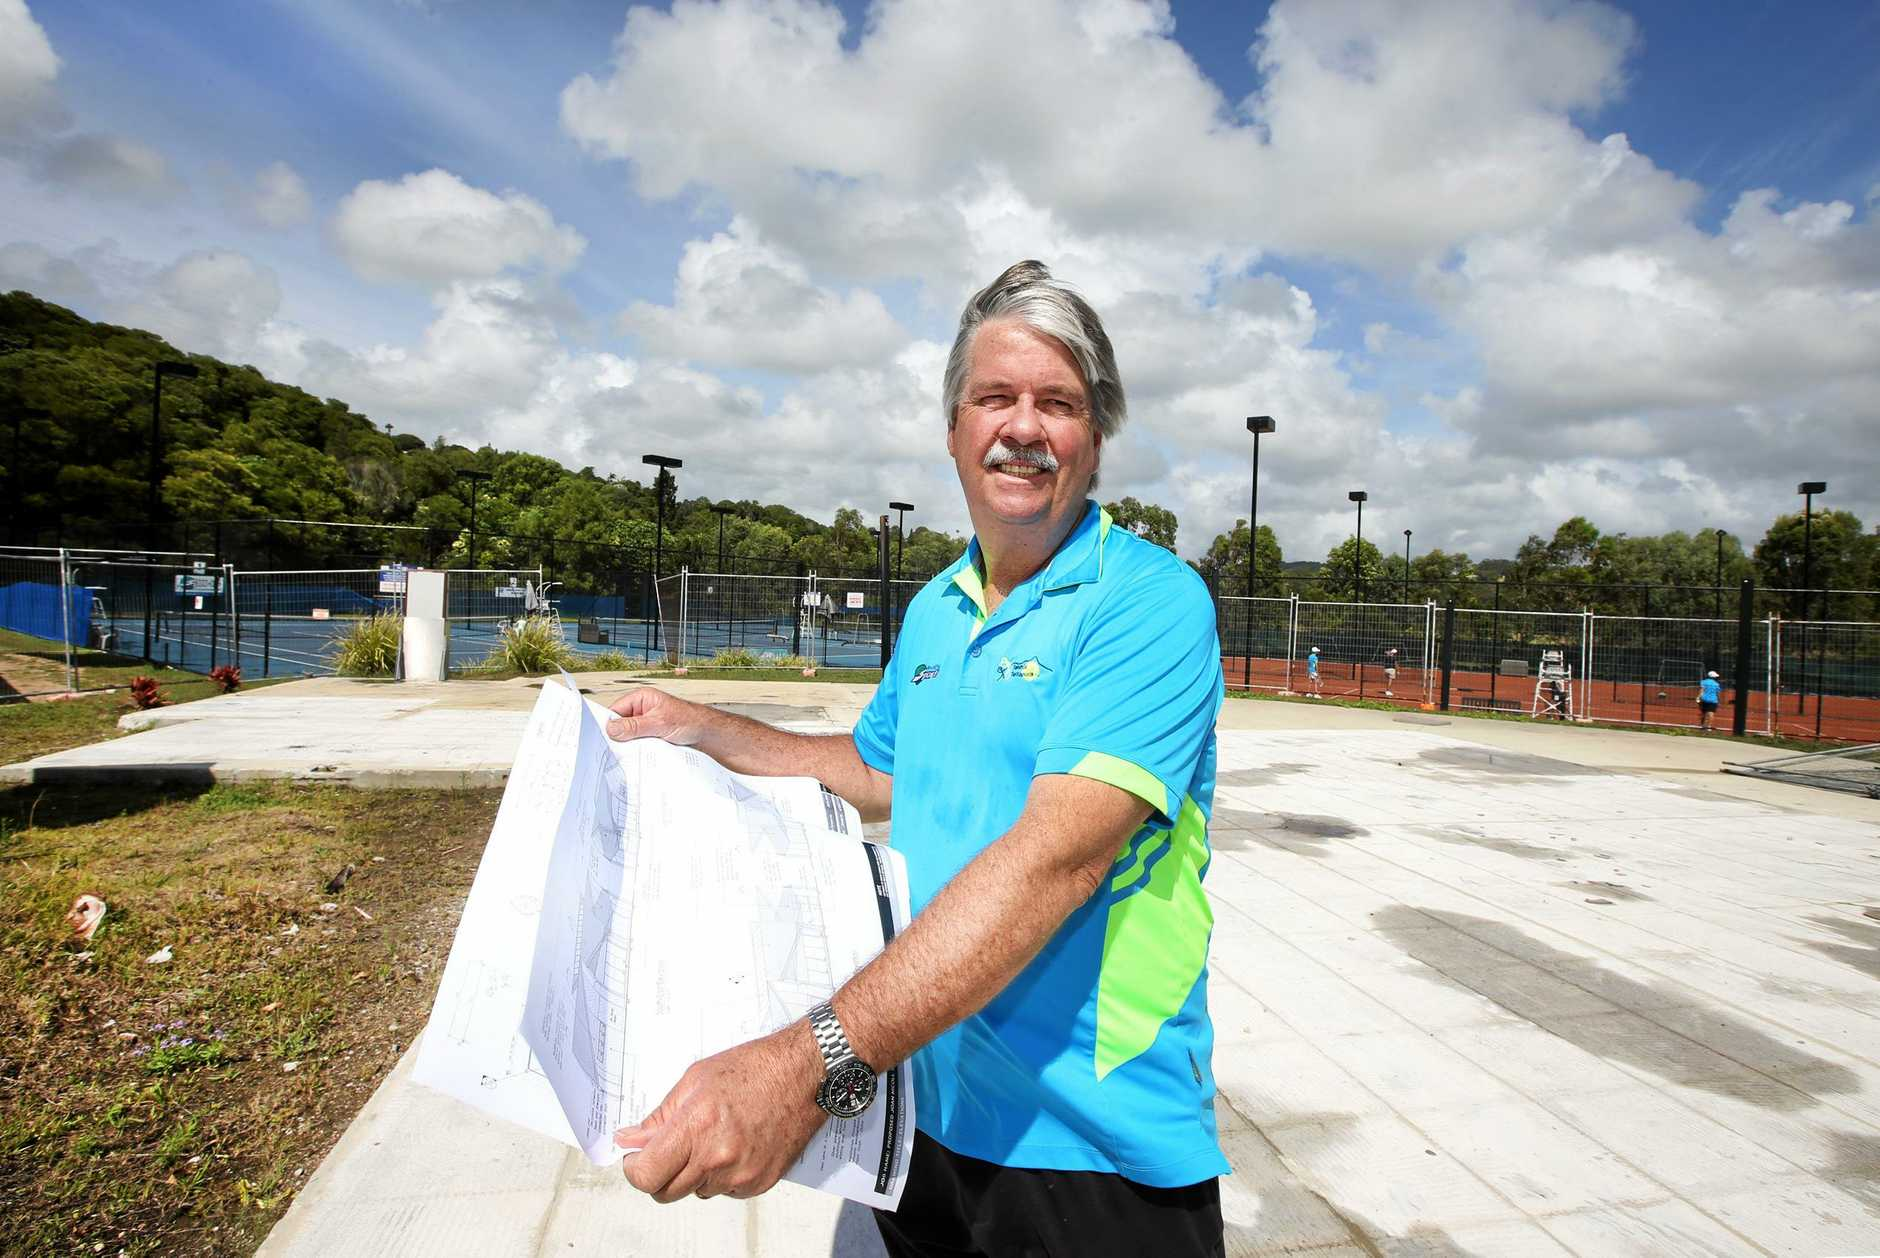 READY TO START: Rob Nienhuis from Terranora Tennis Club. Construction for their new clubhouse has been approved.